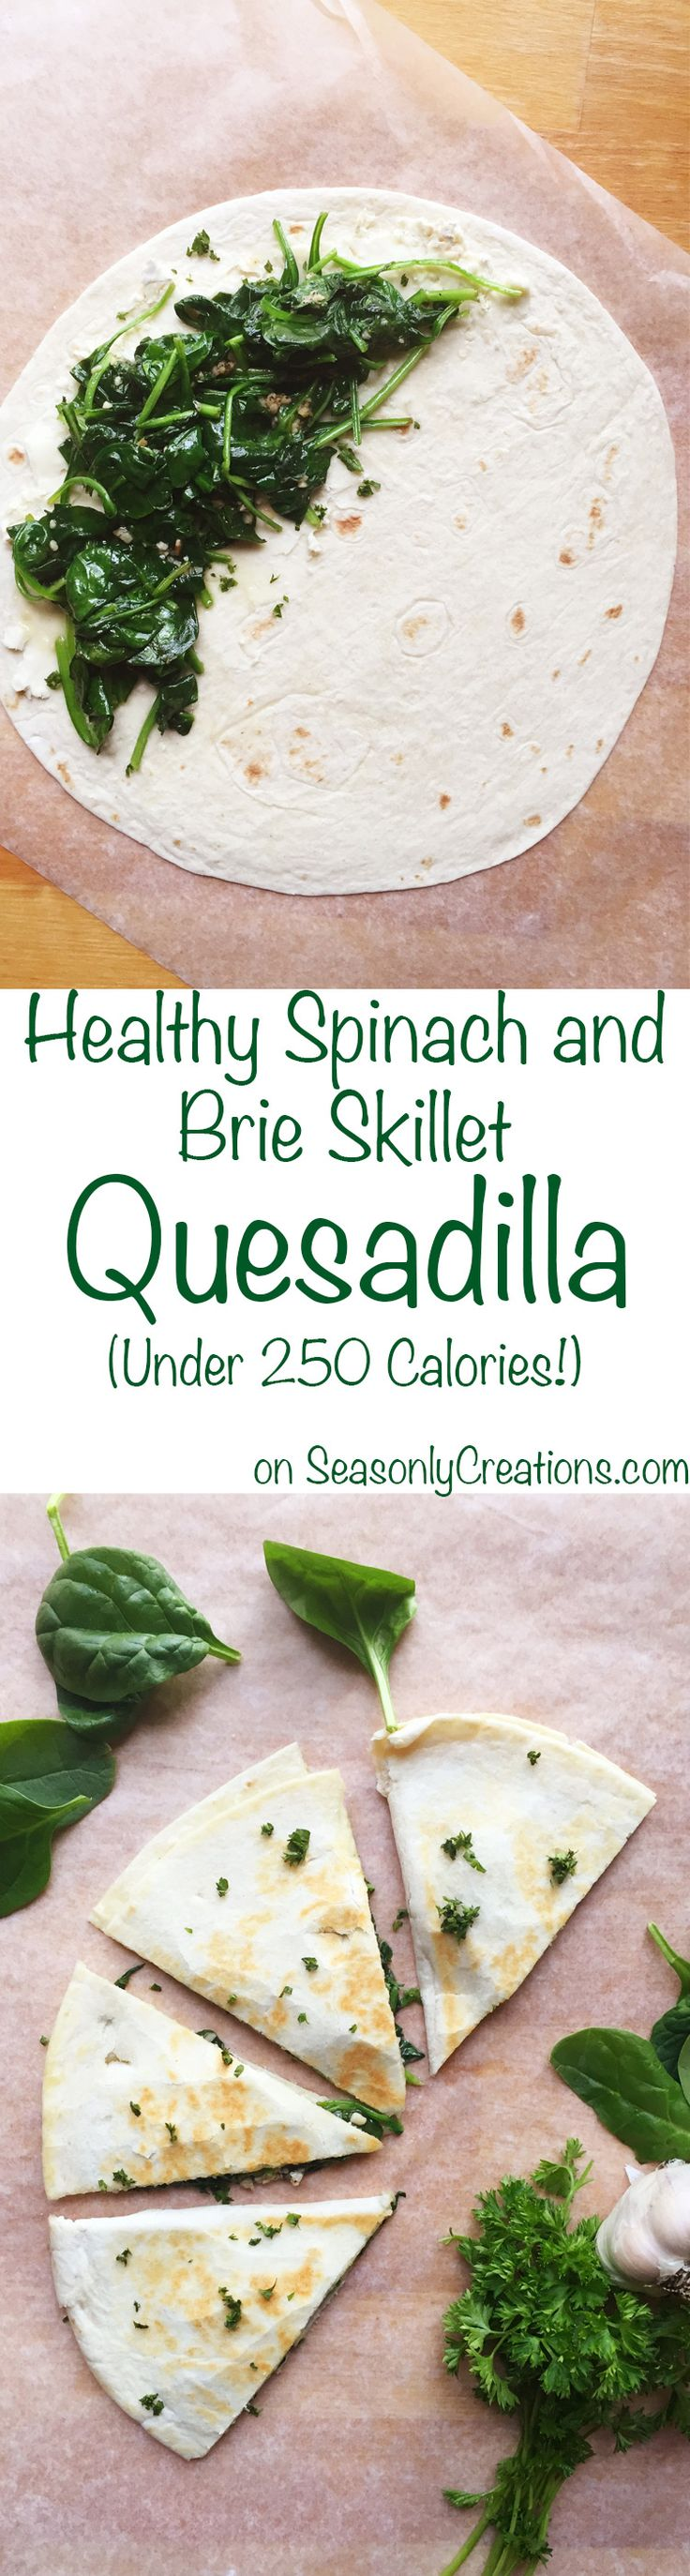 Healthy Spinach and Brie Skillet Quesadilla, Under 250 Calories. This crunchy, cheesy, flavorful recipe is perfect if you're looking for a healthy, single serving sized meal you can make make in just one skillet, no fancy equipment necessary (plus, it's a nice vegetarian recipe you can add to your collection)! Enjoy as a snack, for breakfast, as an appetizer, or whenever!   SeasonlyCreations.com   @SeasonlyBlog